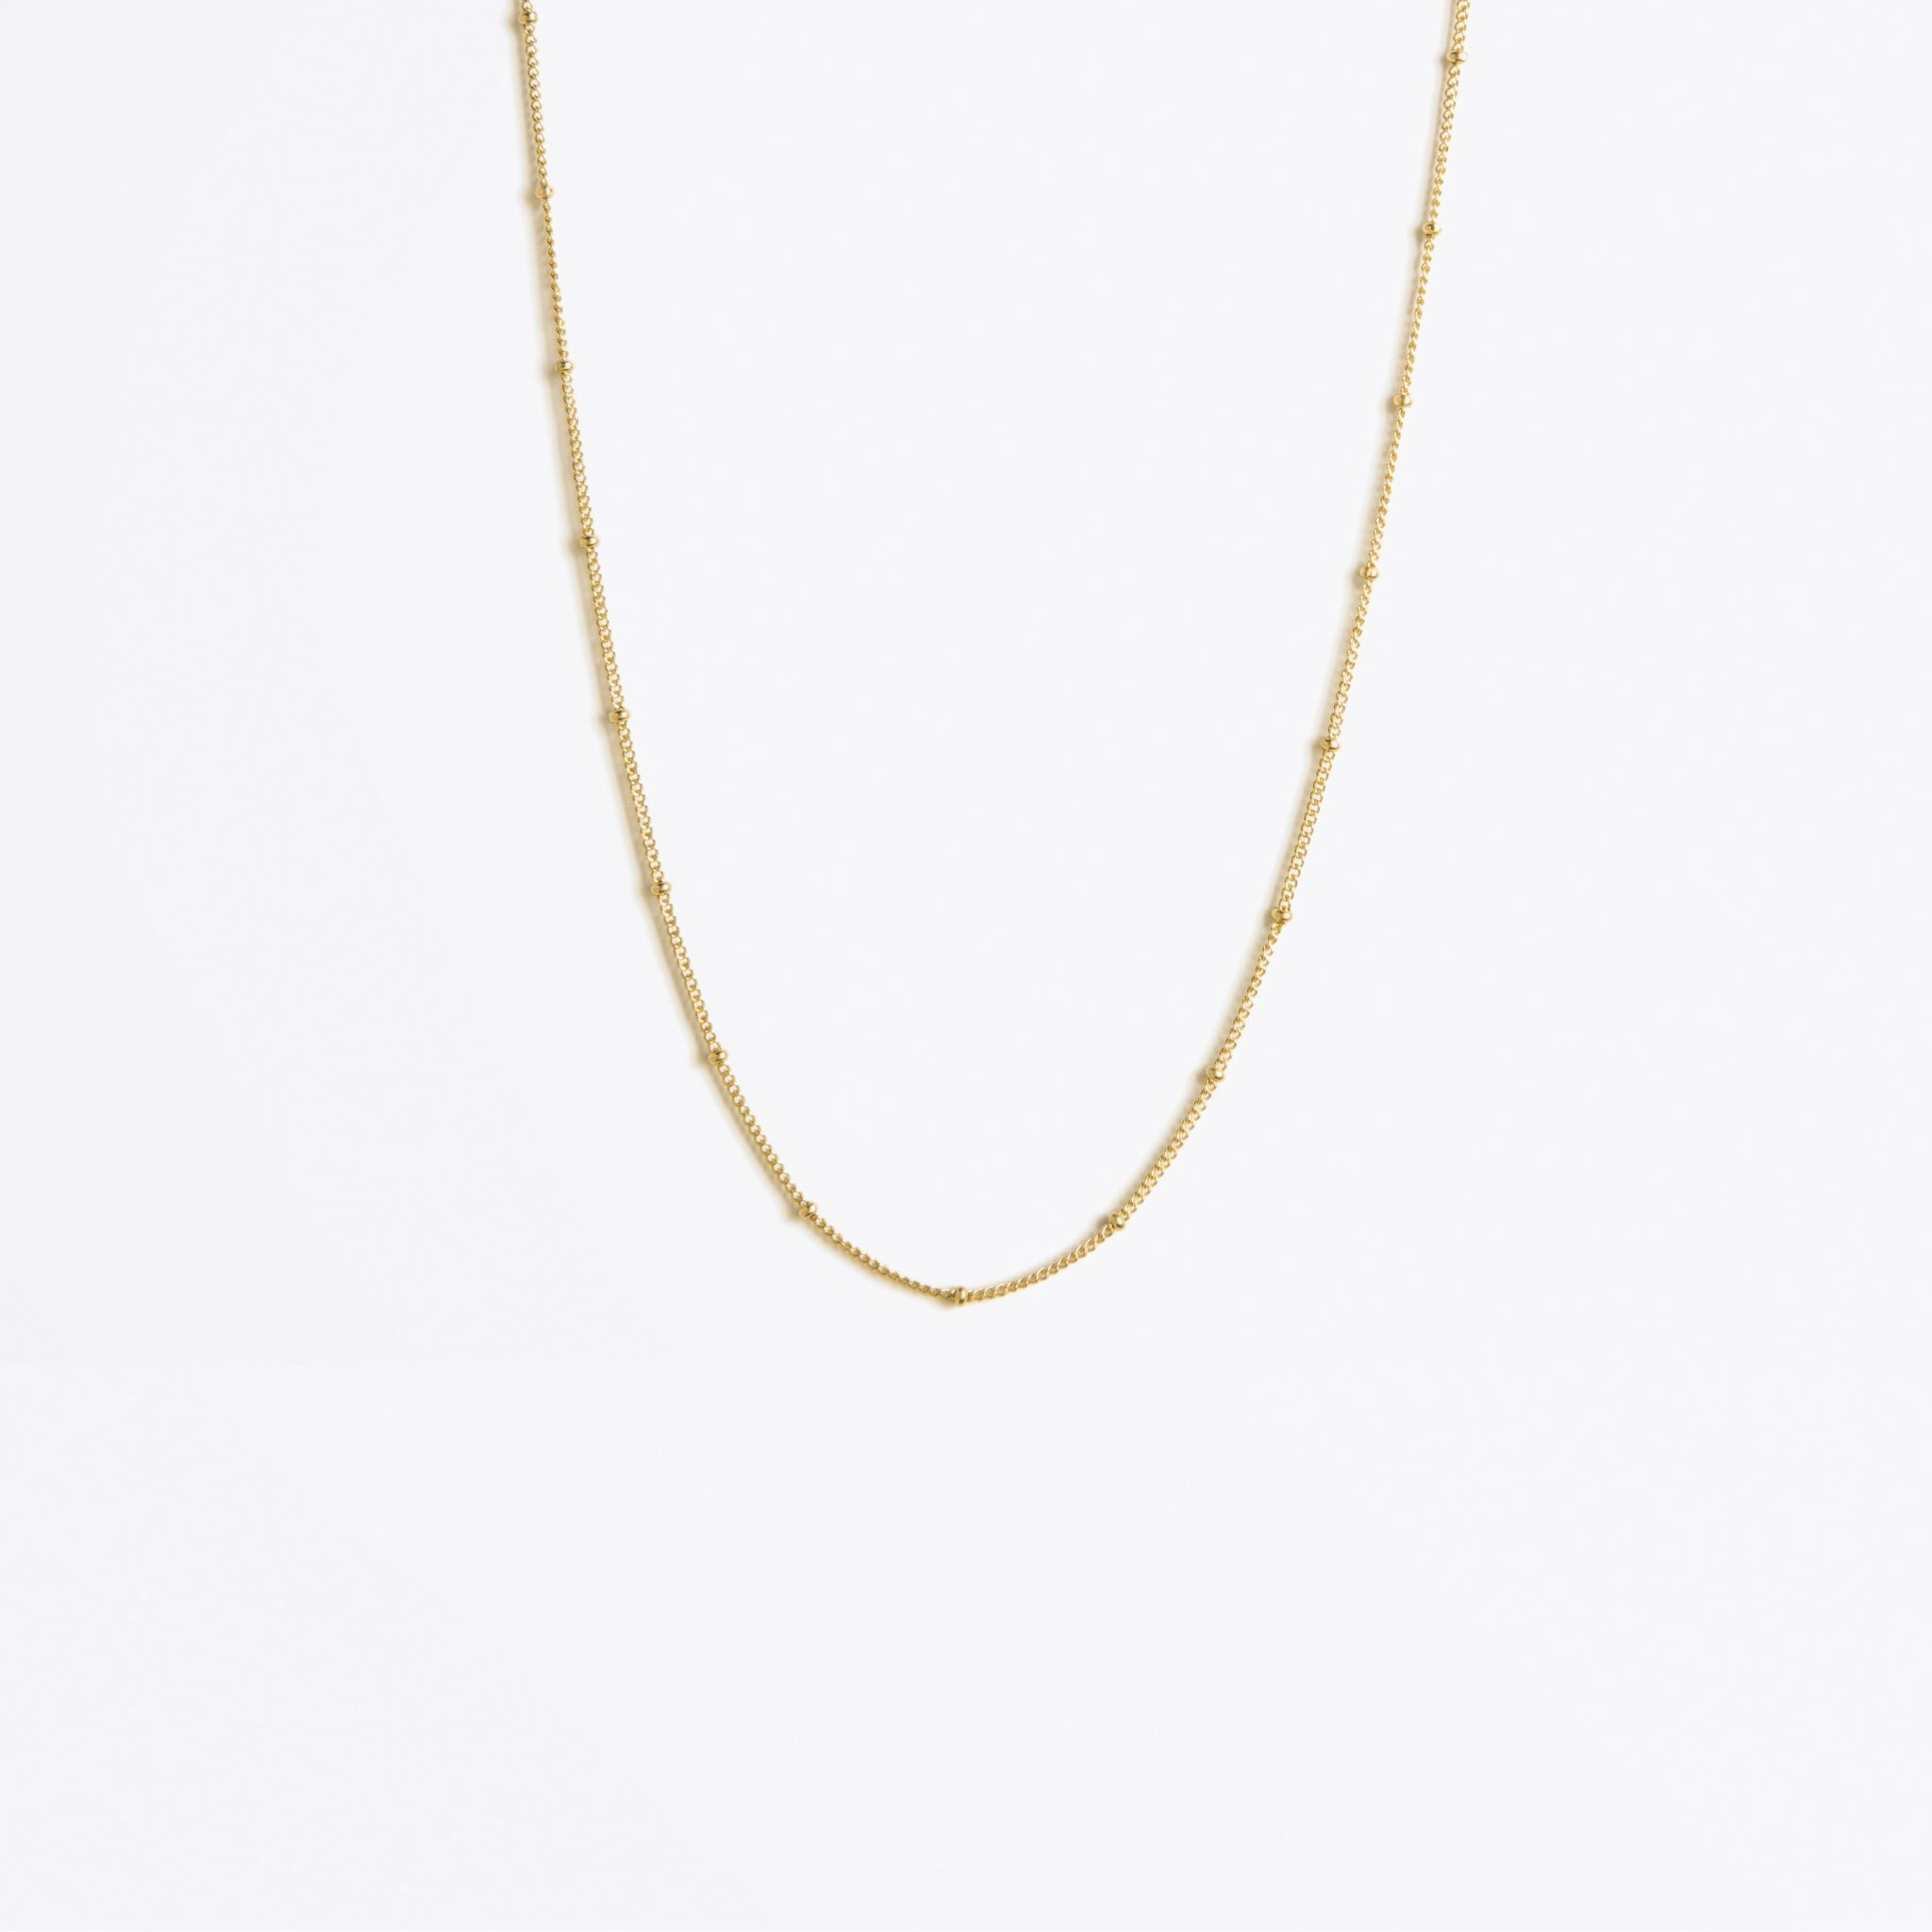 Wanderlust Life Ethically Handmade jewellery made in the UK. Minimalist gold and fine cord jewellery. satellite layering gold chain necklace, regular length